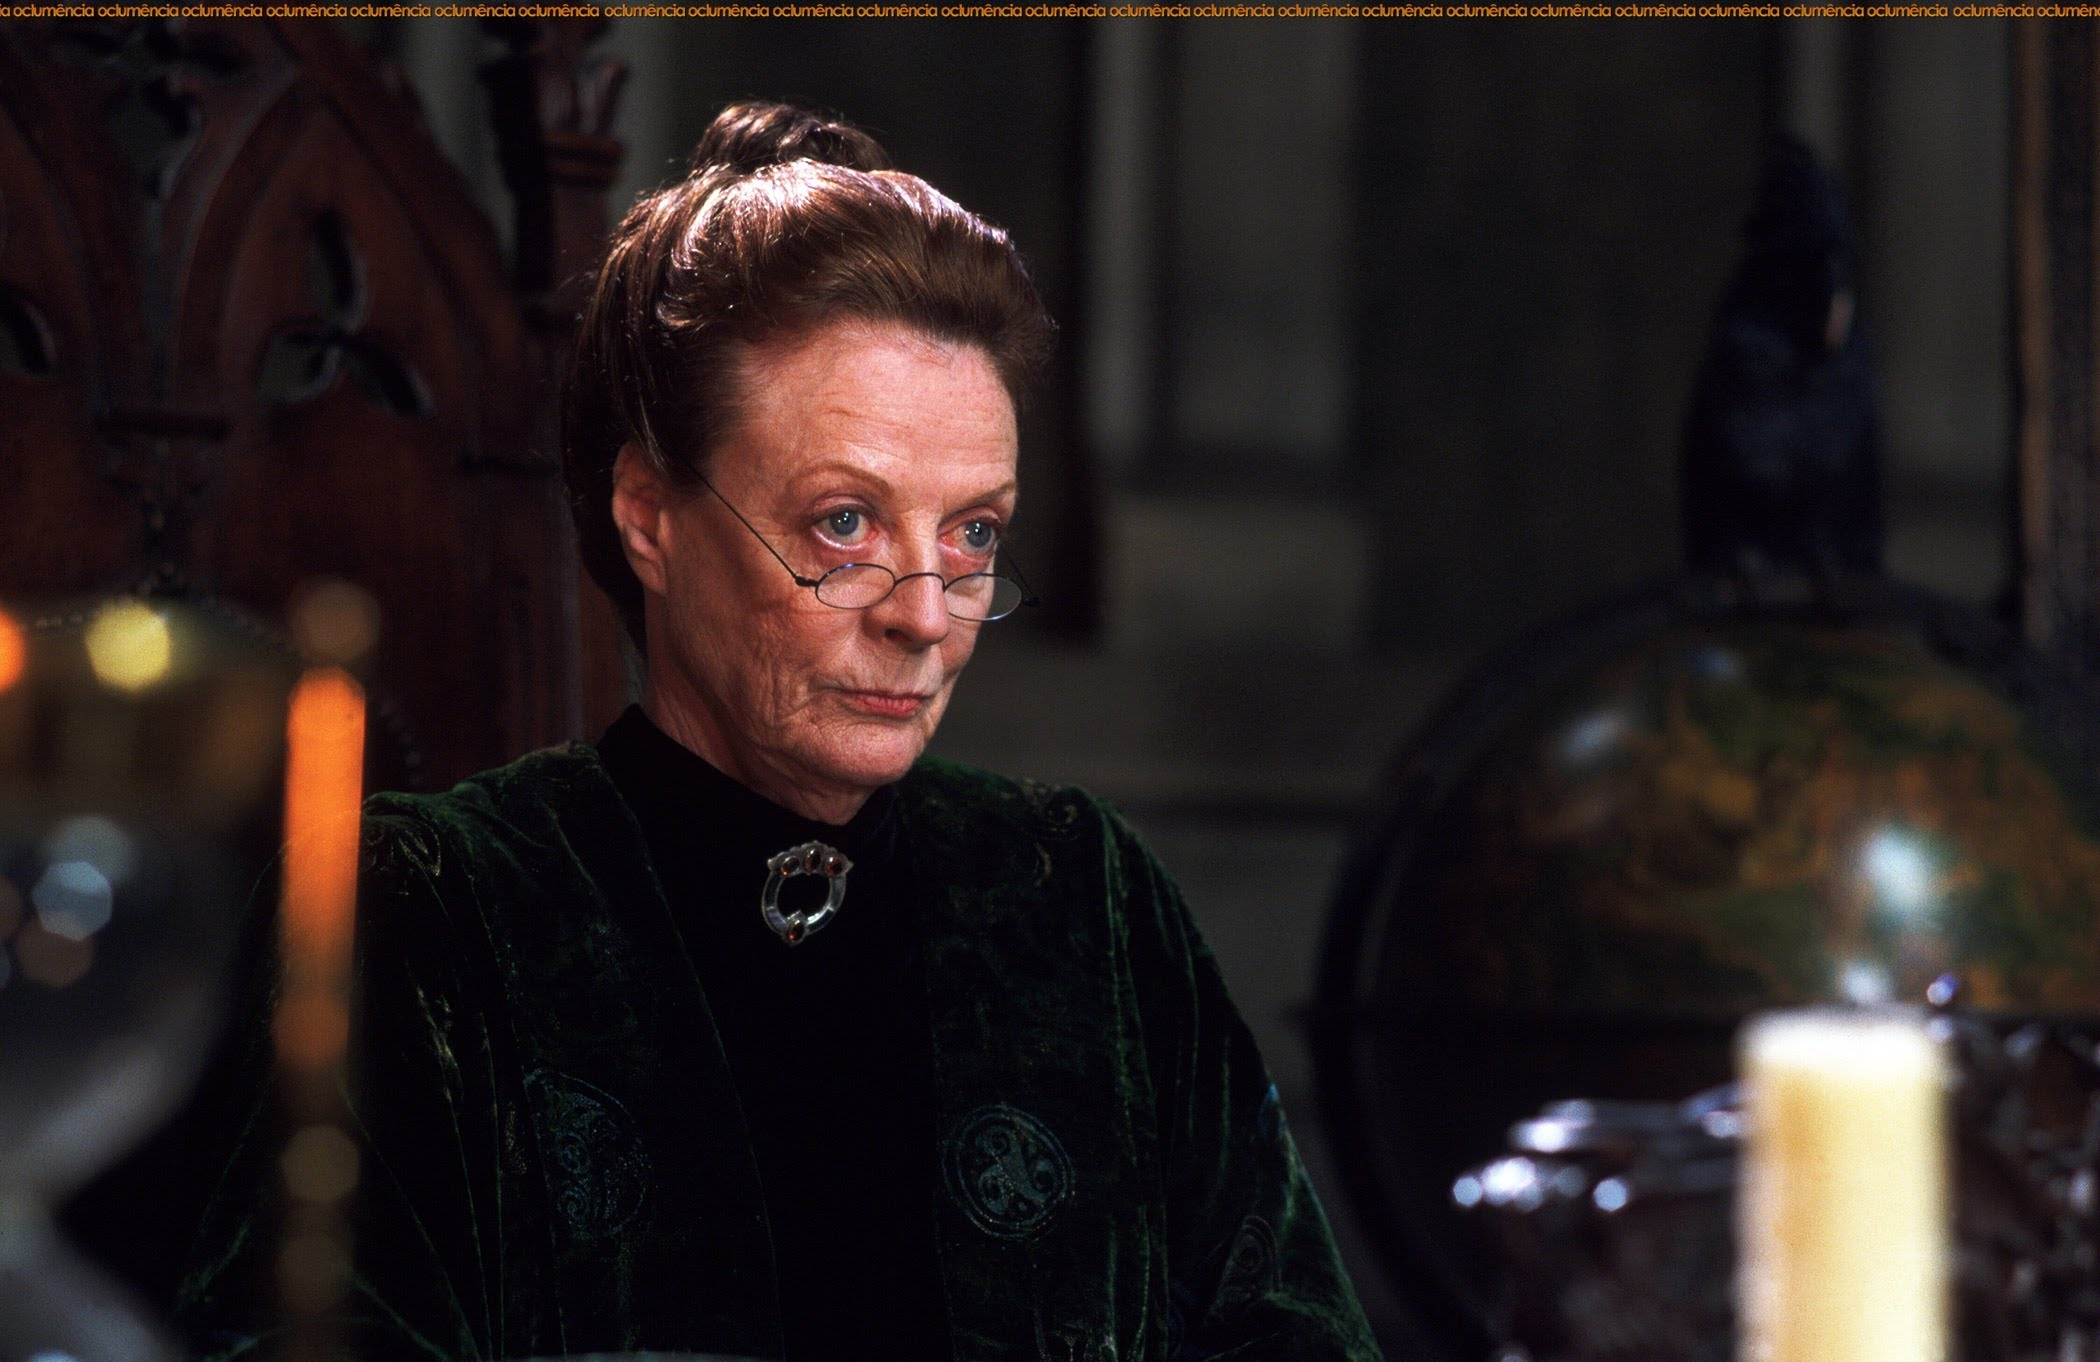 20032015   2100x1362 Minerva Mcgonagall Desktop Wallpapers 2100x1362